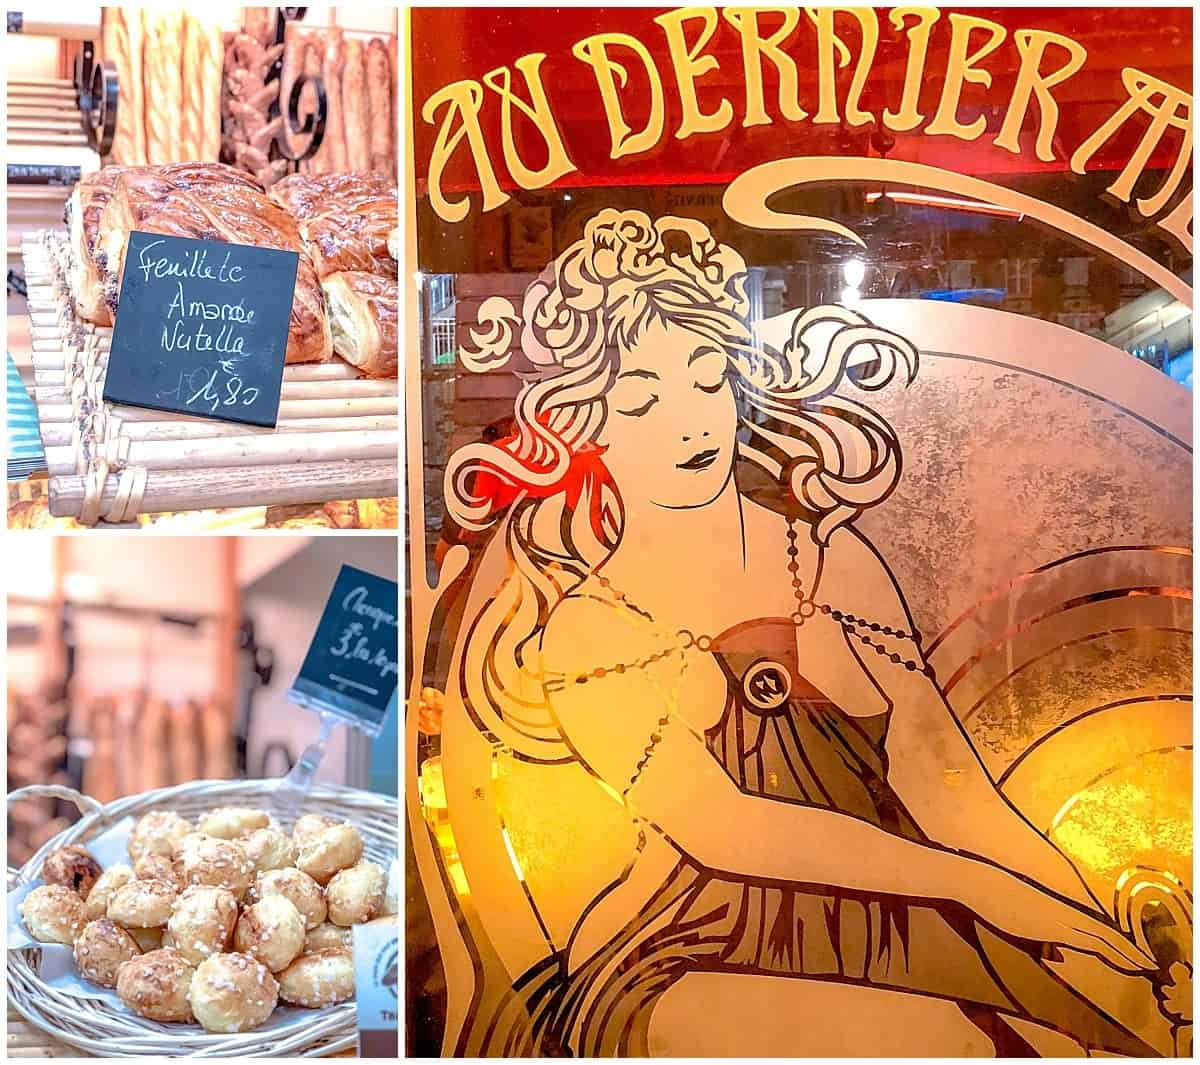 Tasty pastries and art nouveau in Paris